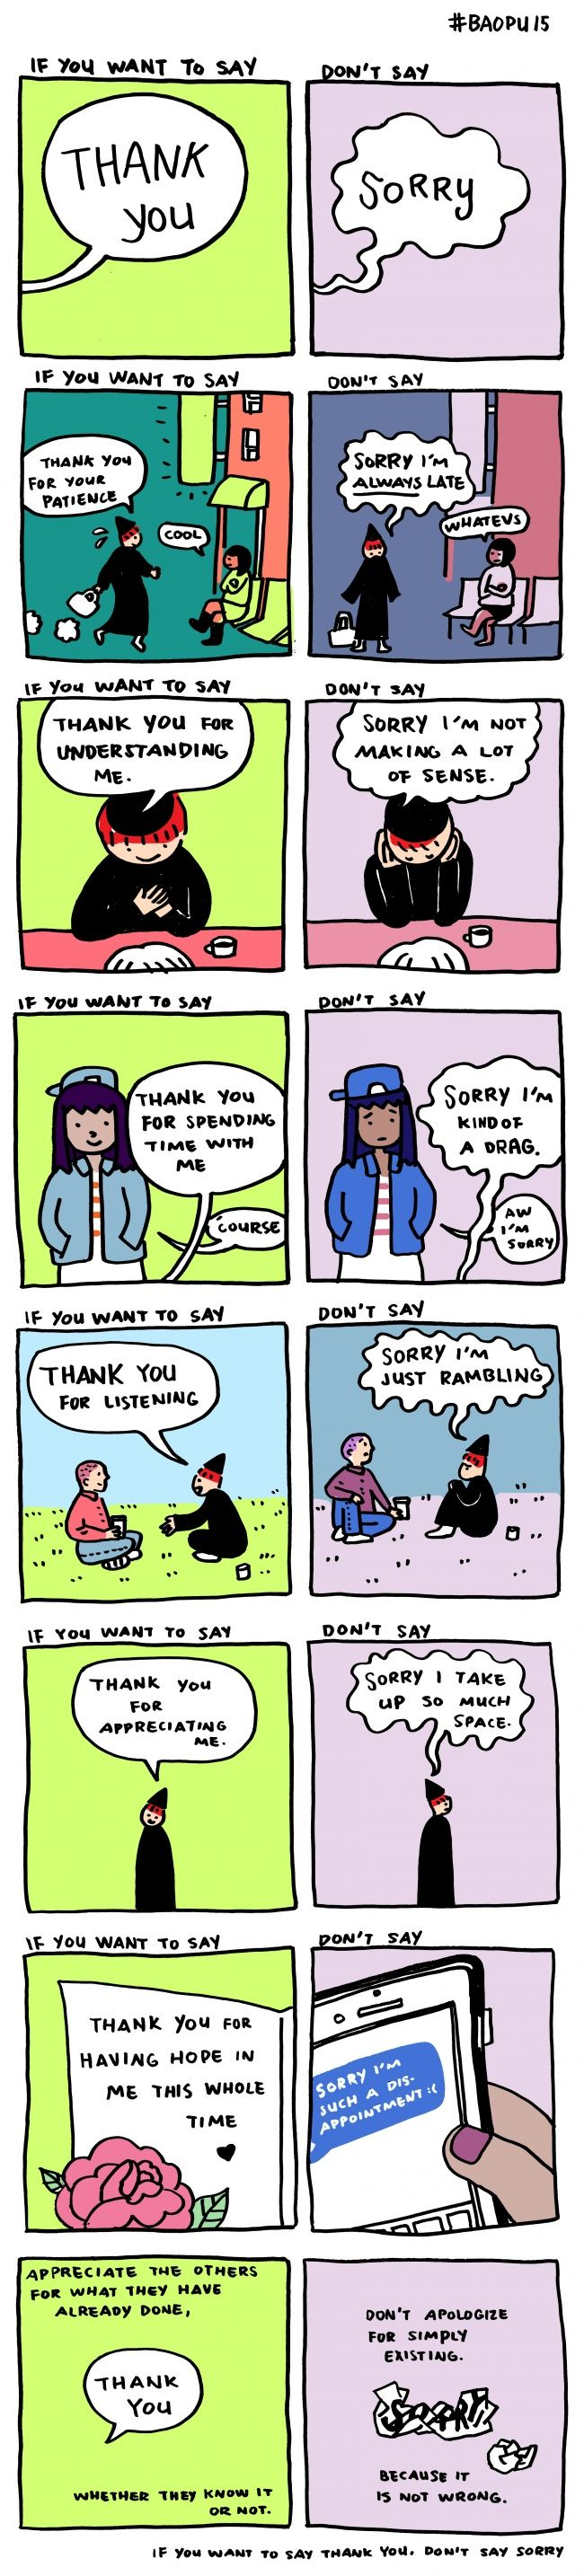 (1) If you want to say thank you, don't say sorry. (Source: Yao Xiao) - Imgur